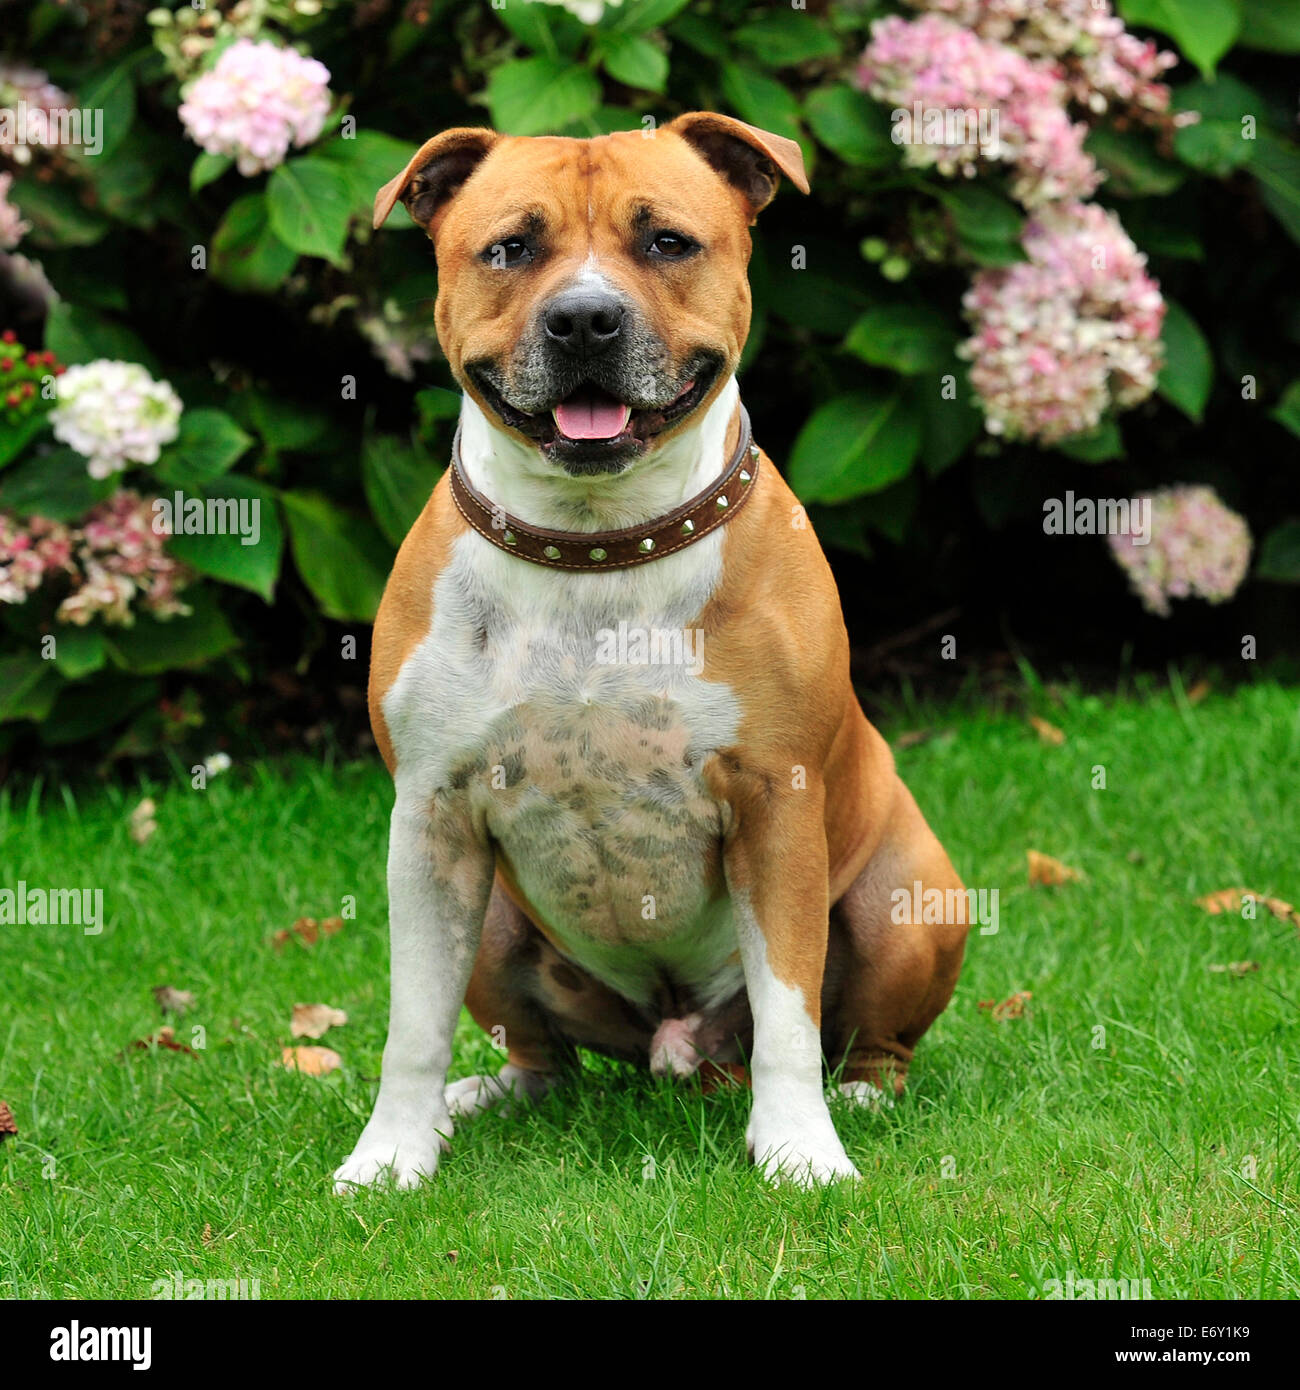 staffordshire bull terrier smiling and sitting - Stock Image